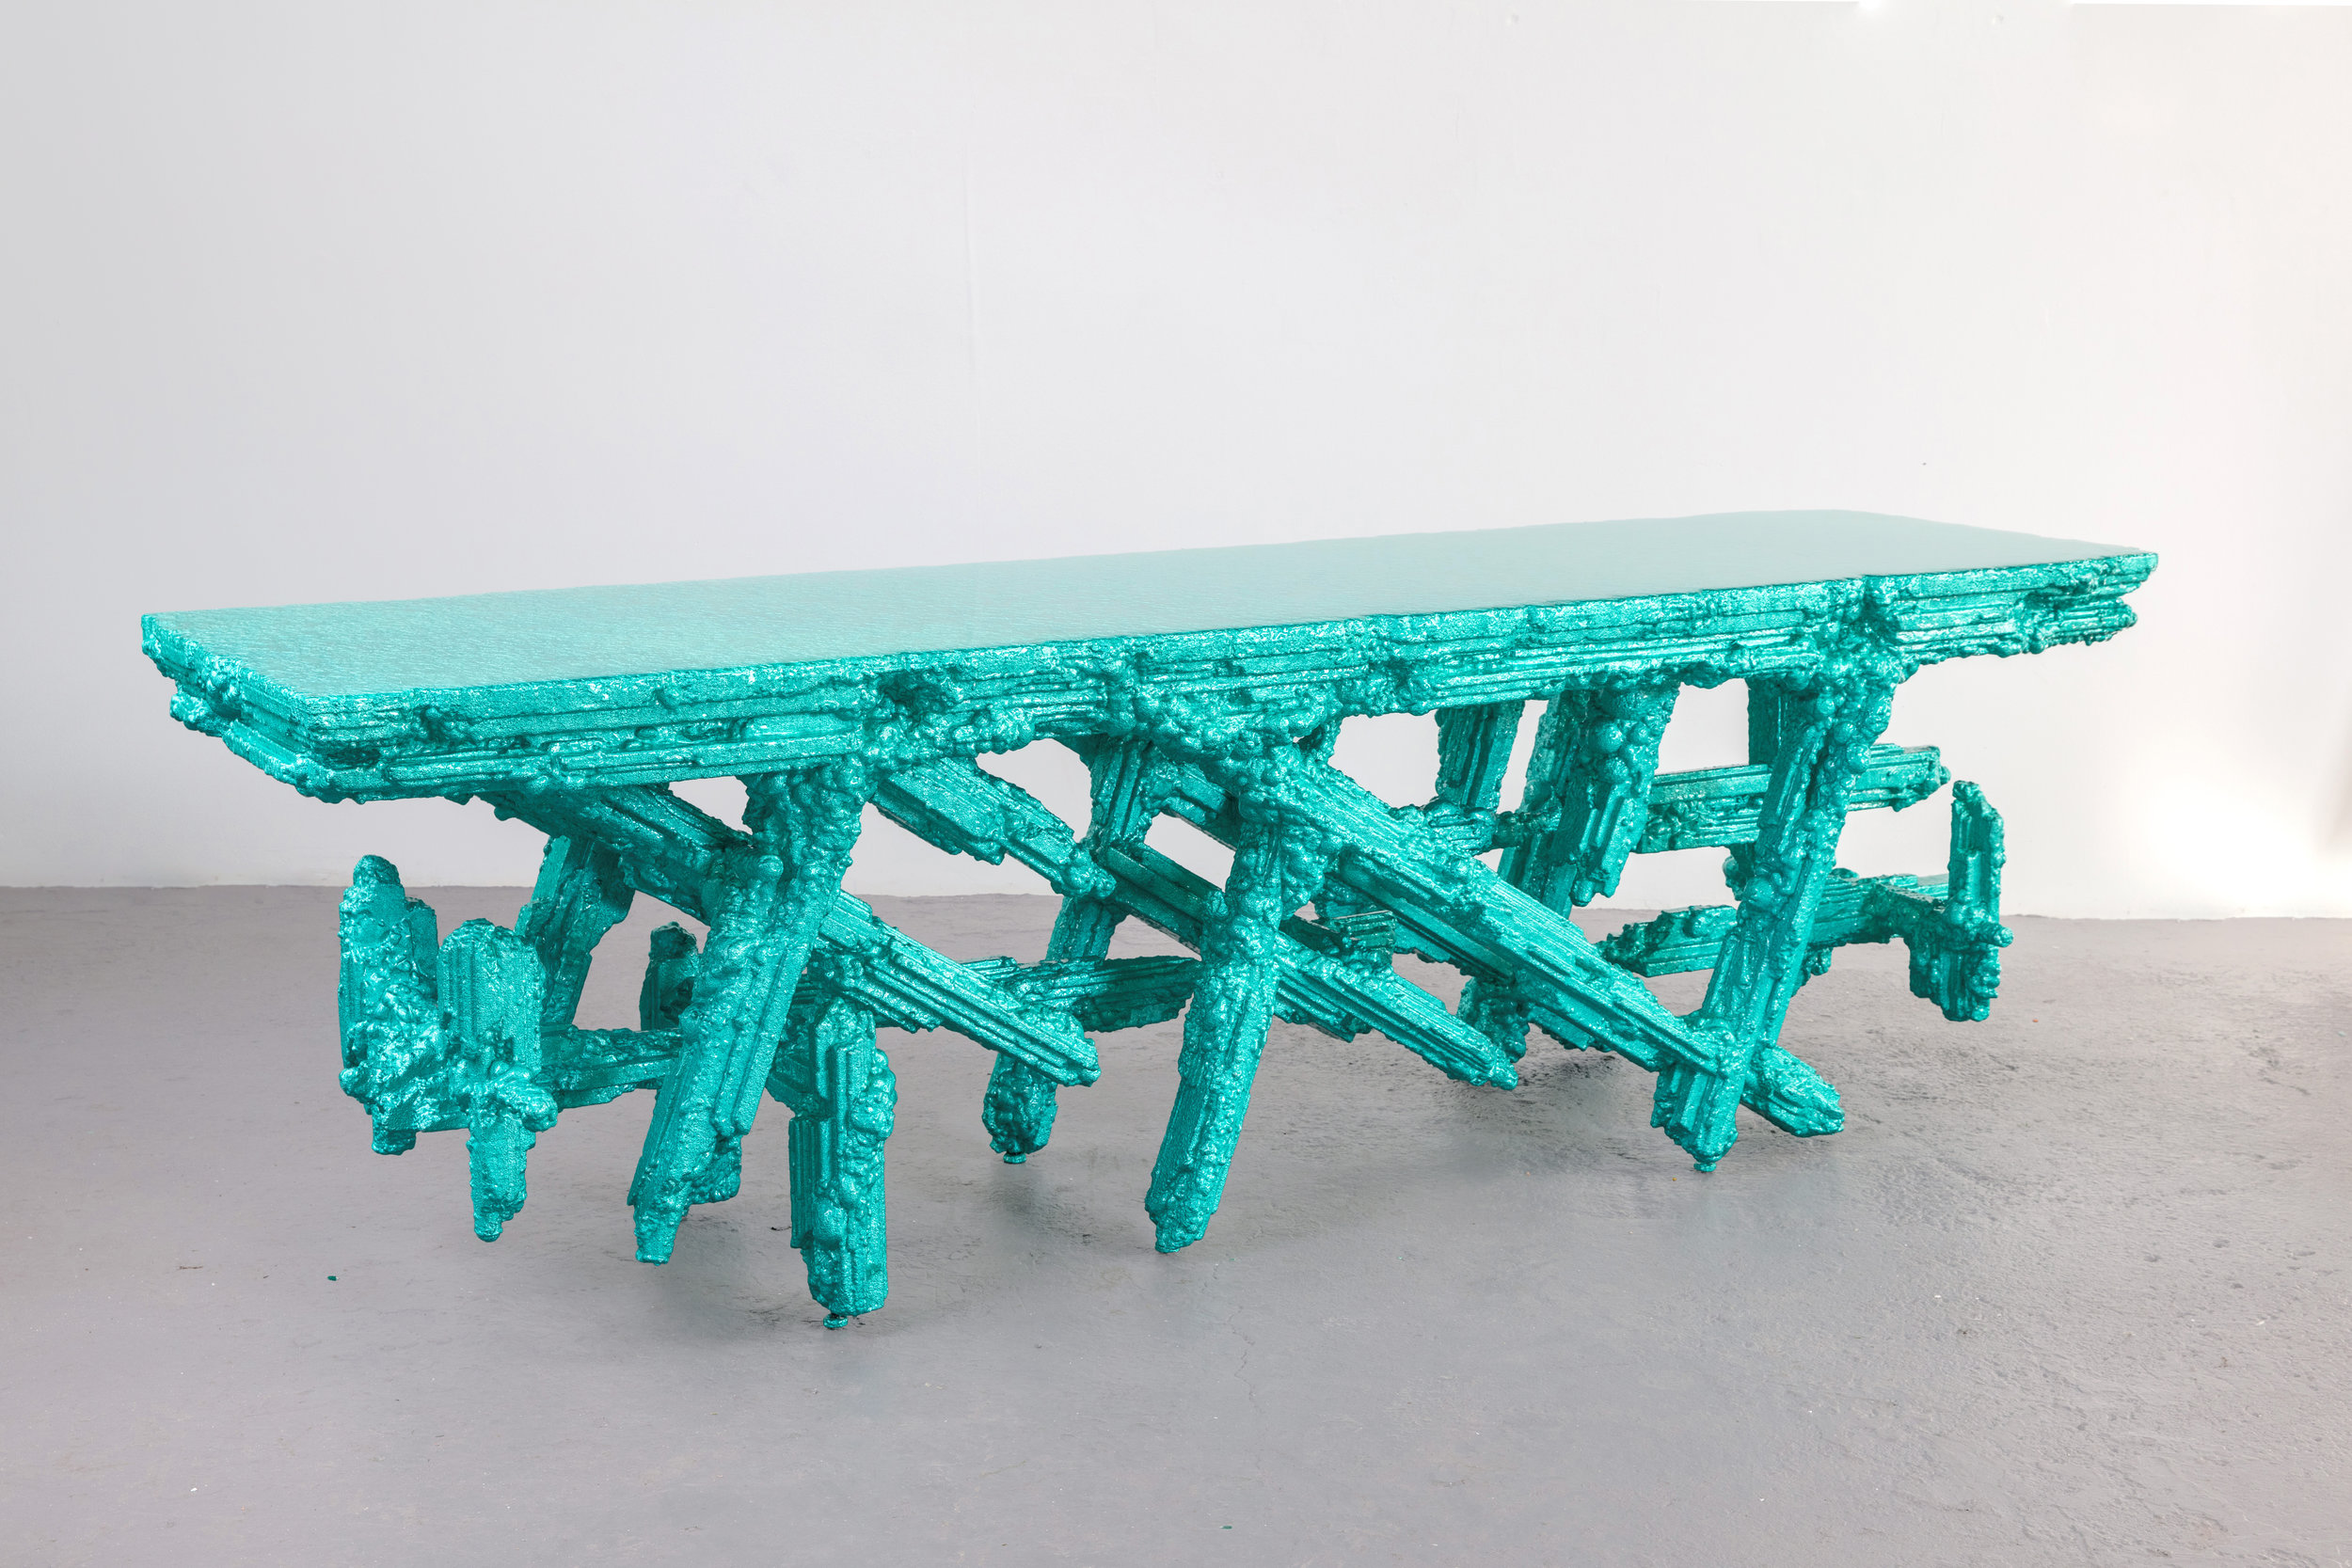 Arcane Console , 2017 100 x 28 x 31 inches Resin, steel, and polystyrene